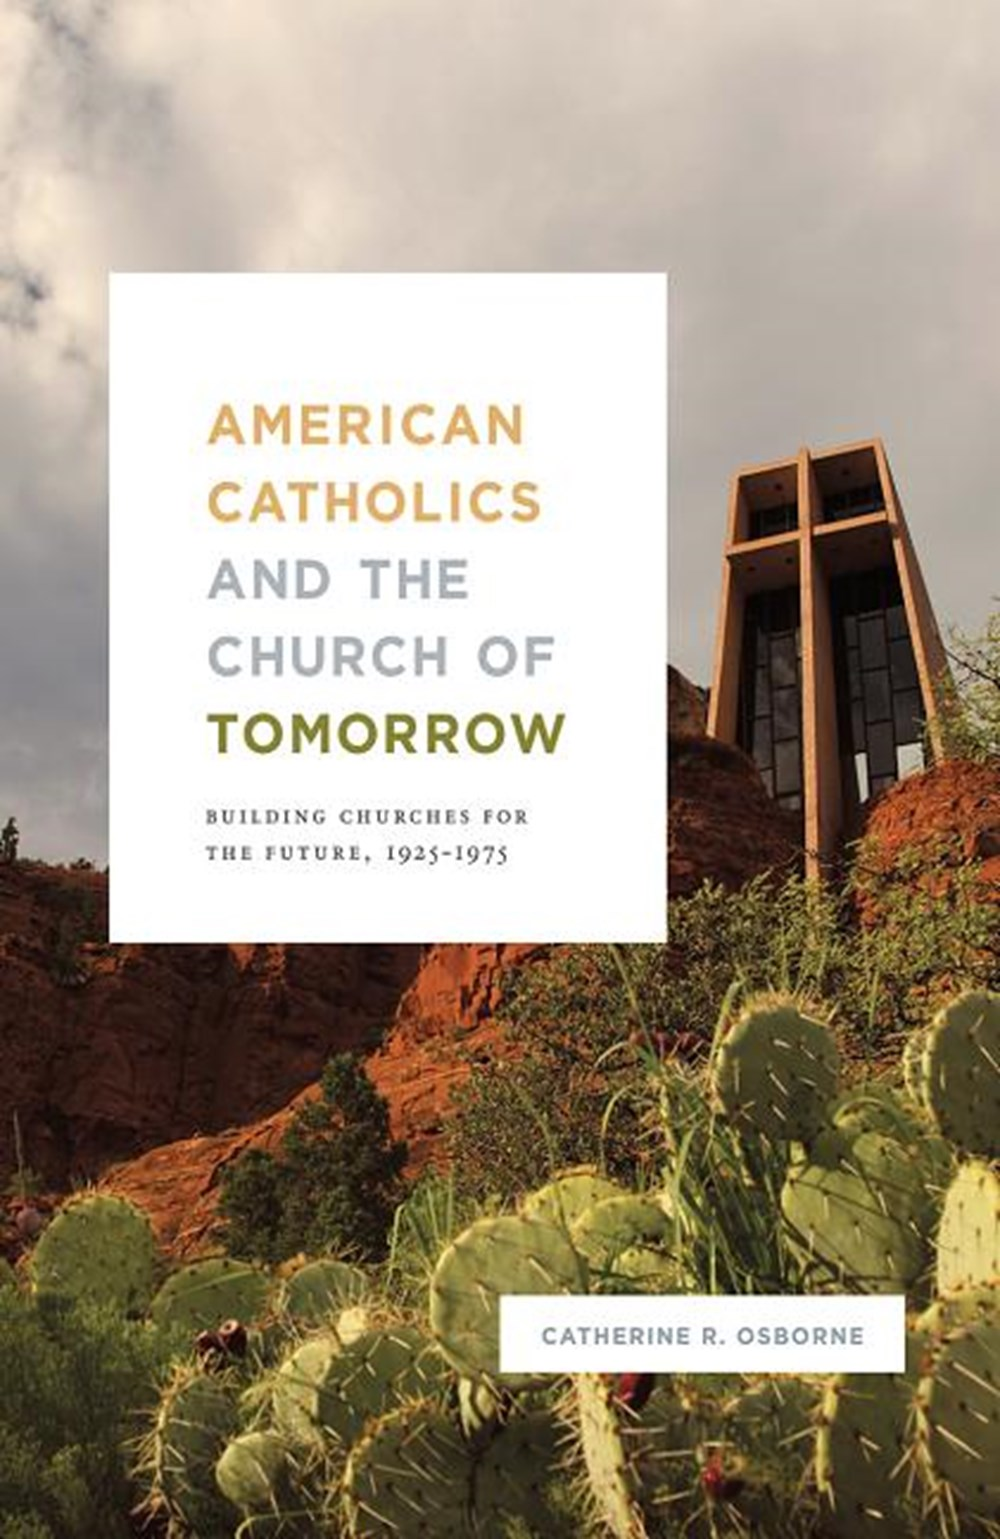 American Catholics and the Church of Tomorrow Building Churches for the Future, 1925-1975